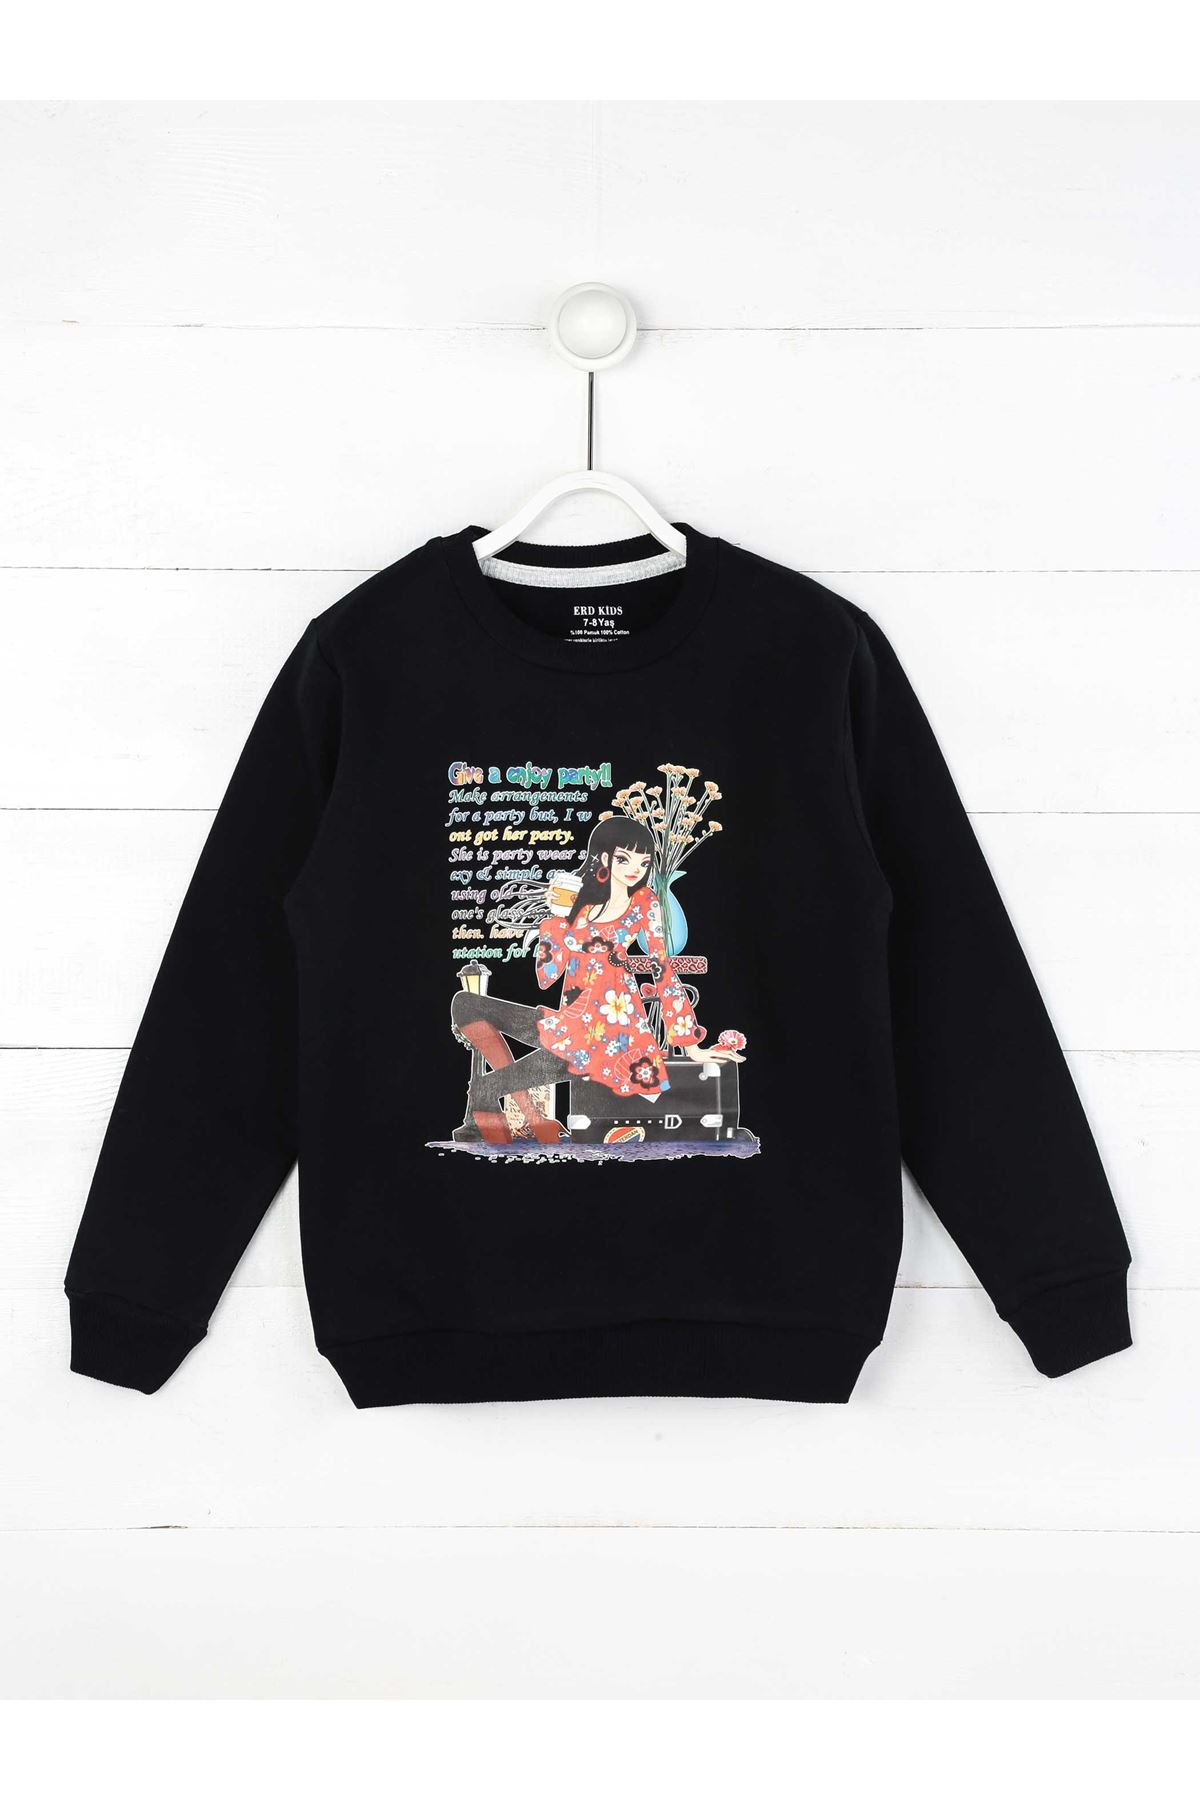 Dark Navy Blue Seasonal Girl Child Sweatshirt